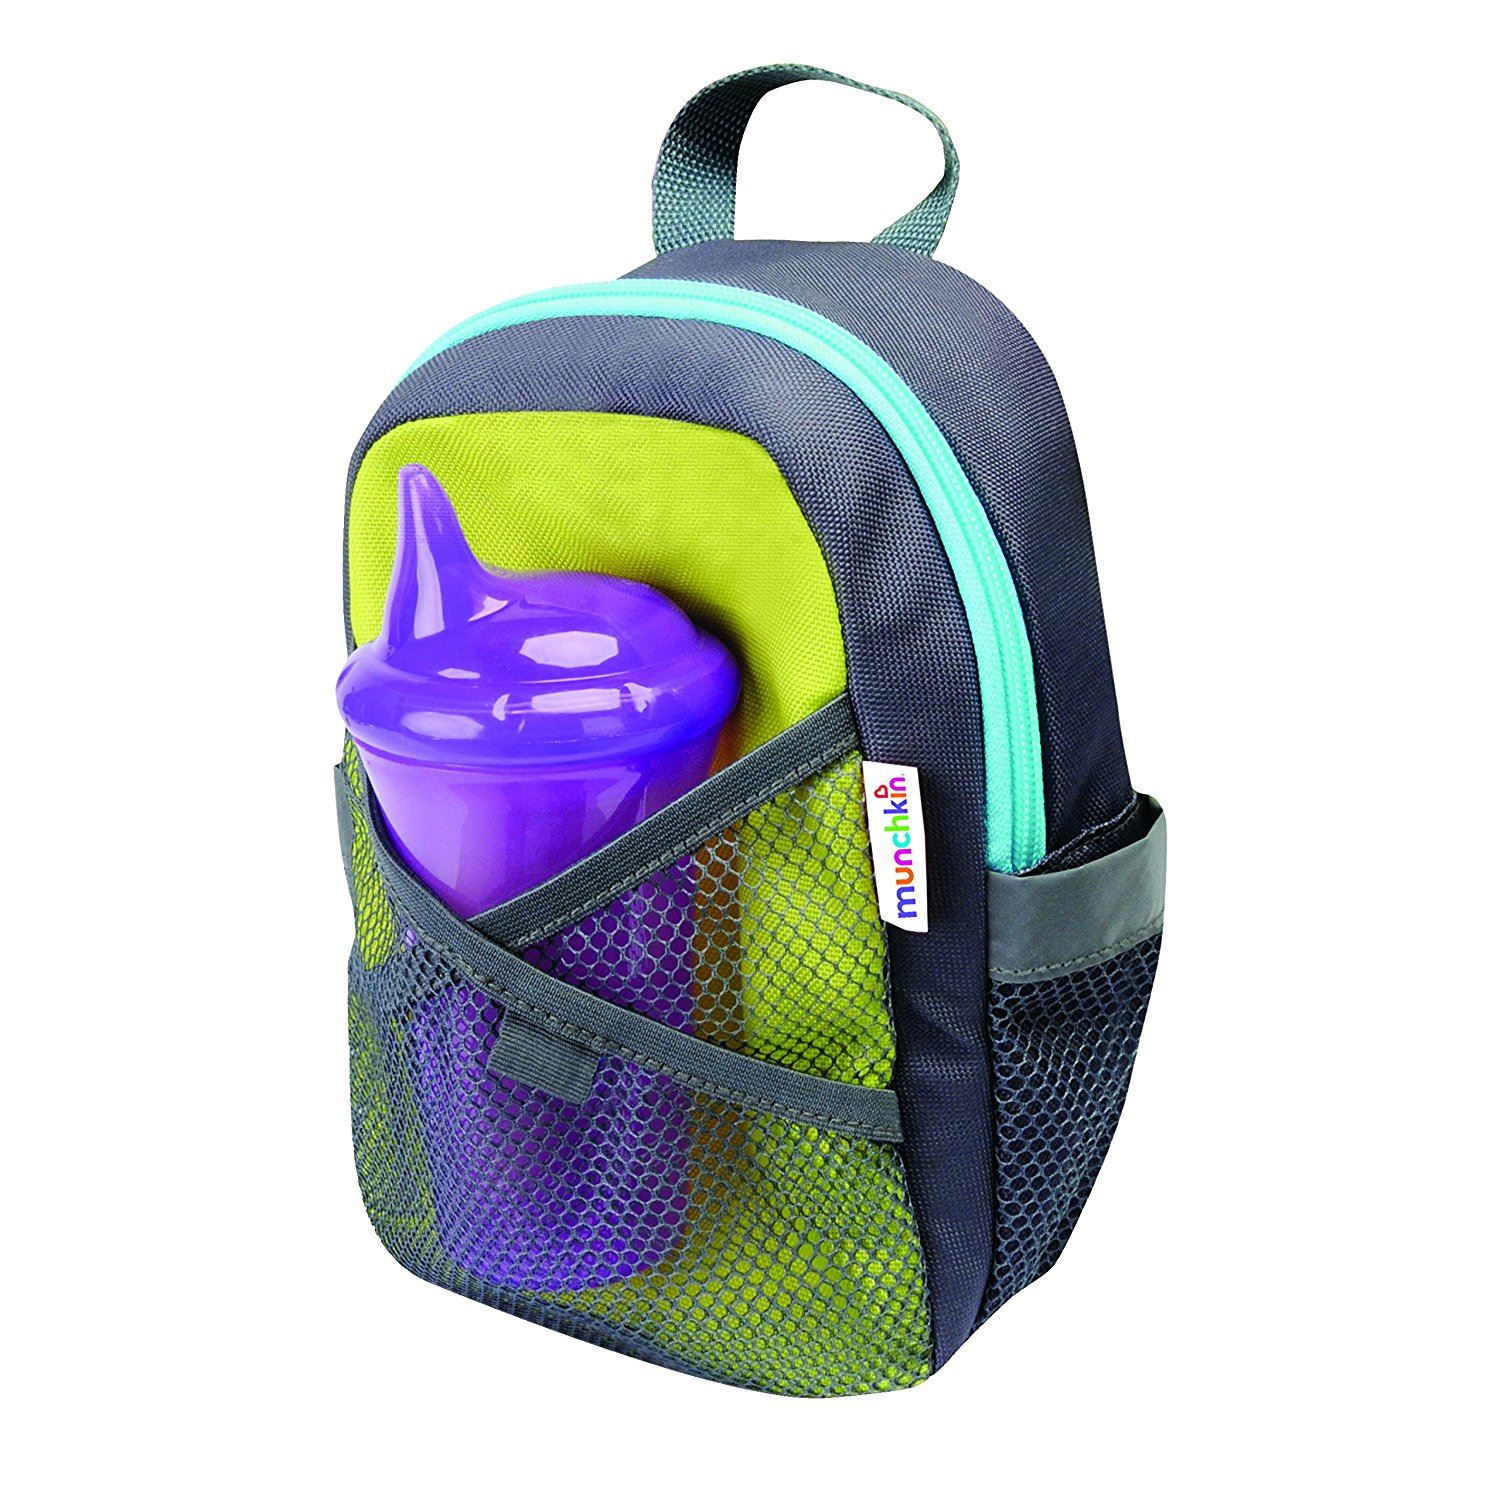 Munchkin By My Side Safety Harness Backpack (green)